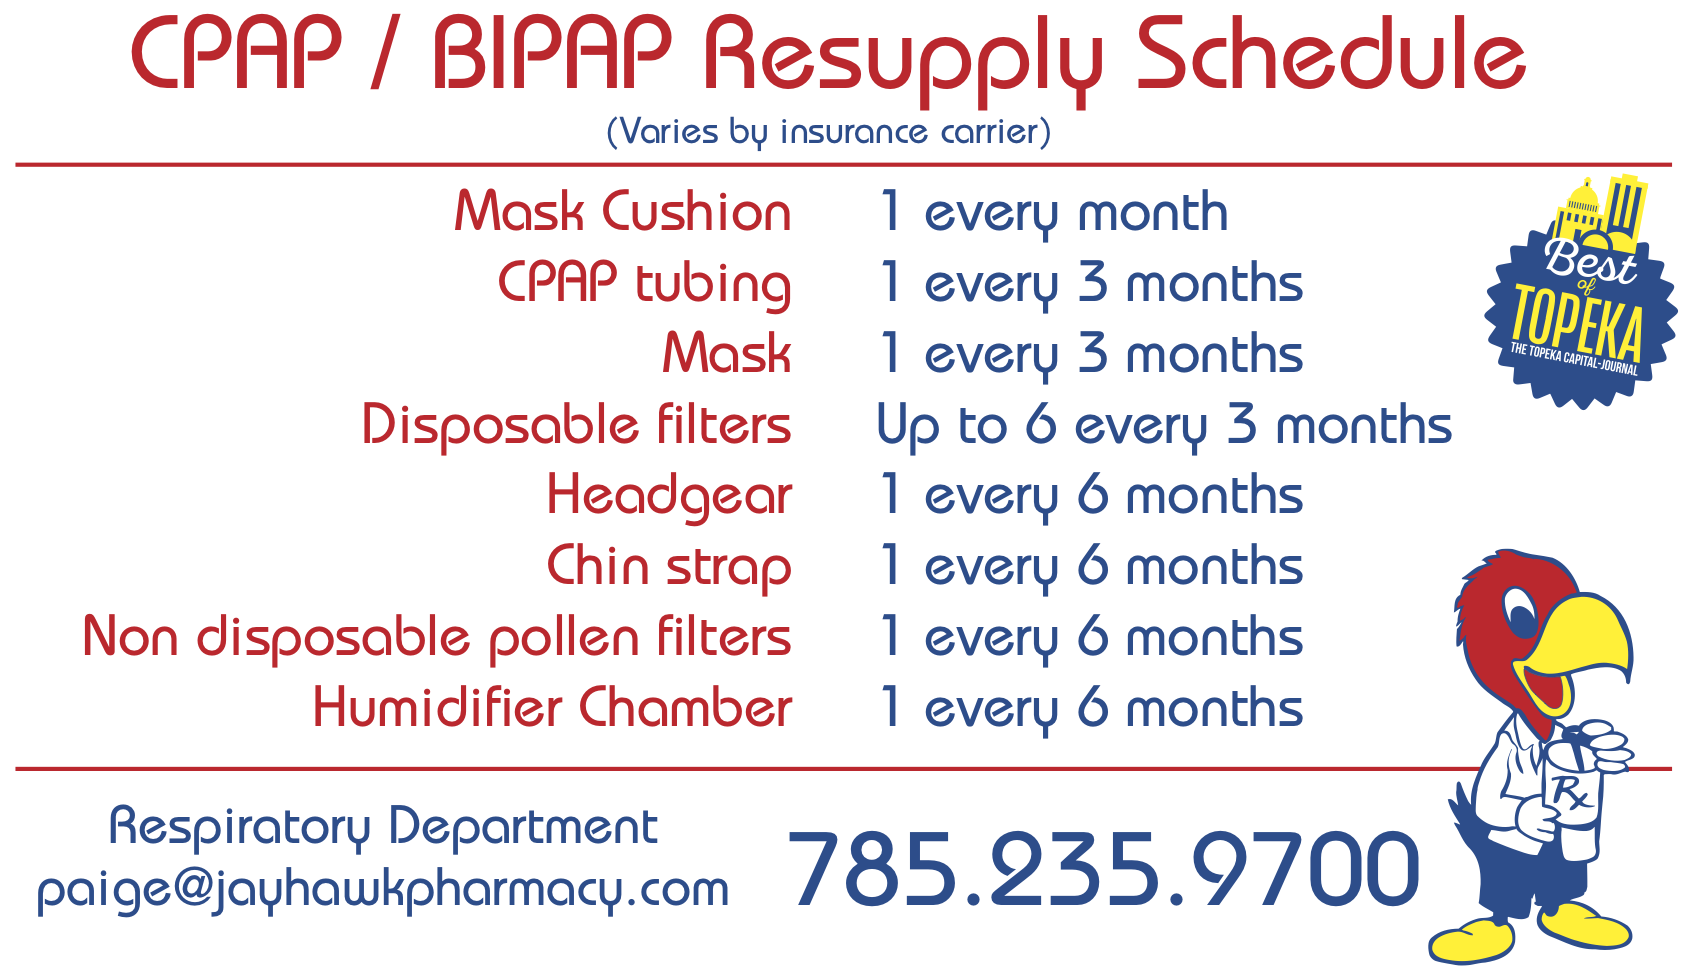 CPAP Resupply schedule